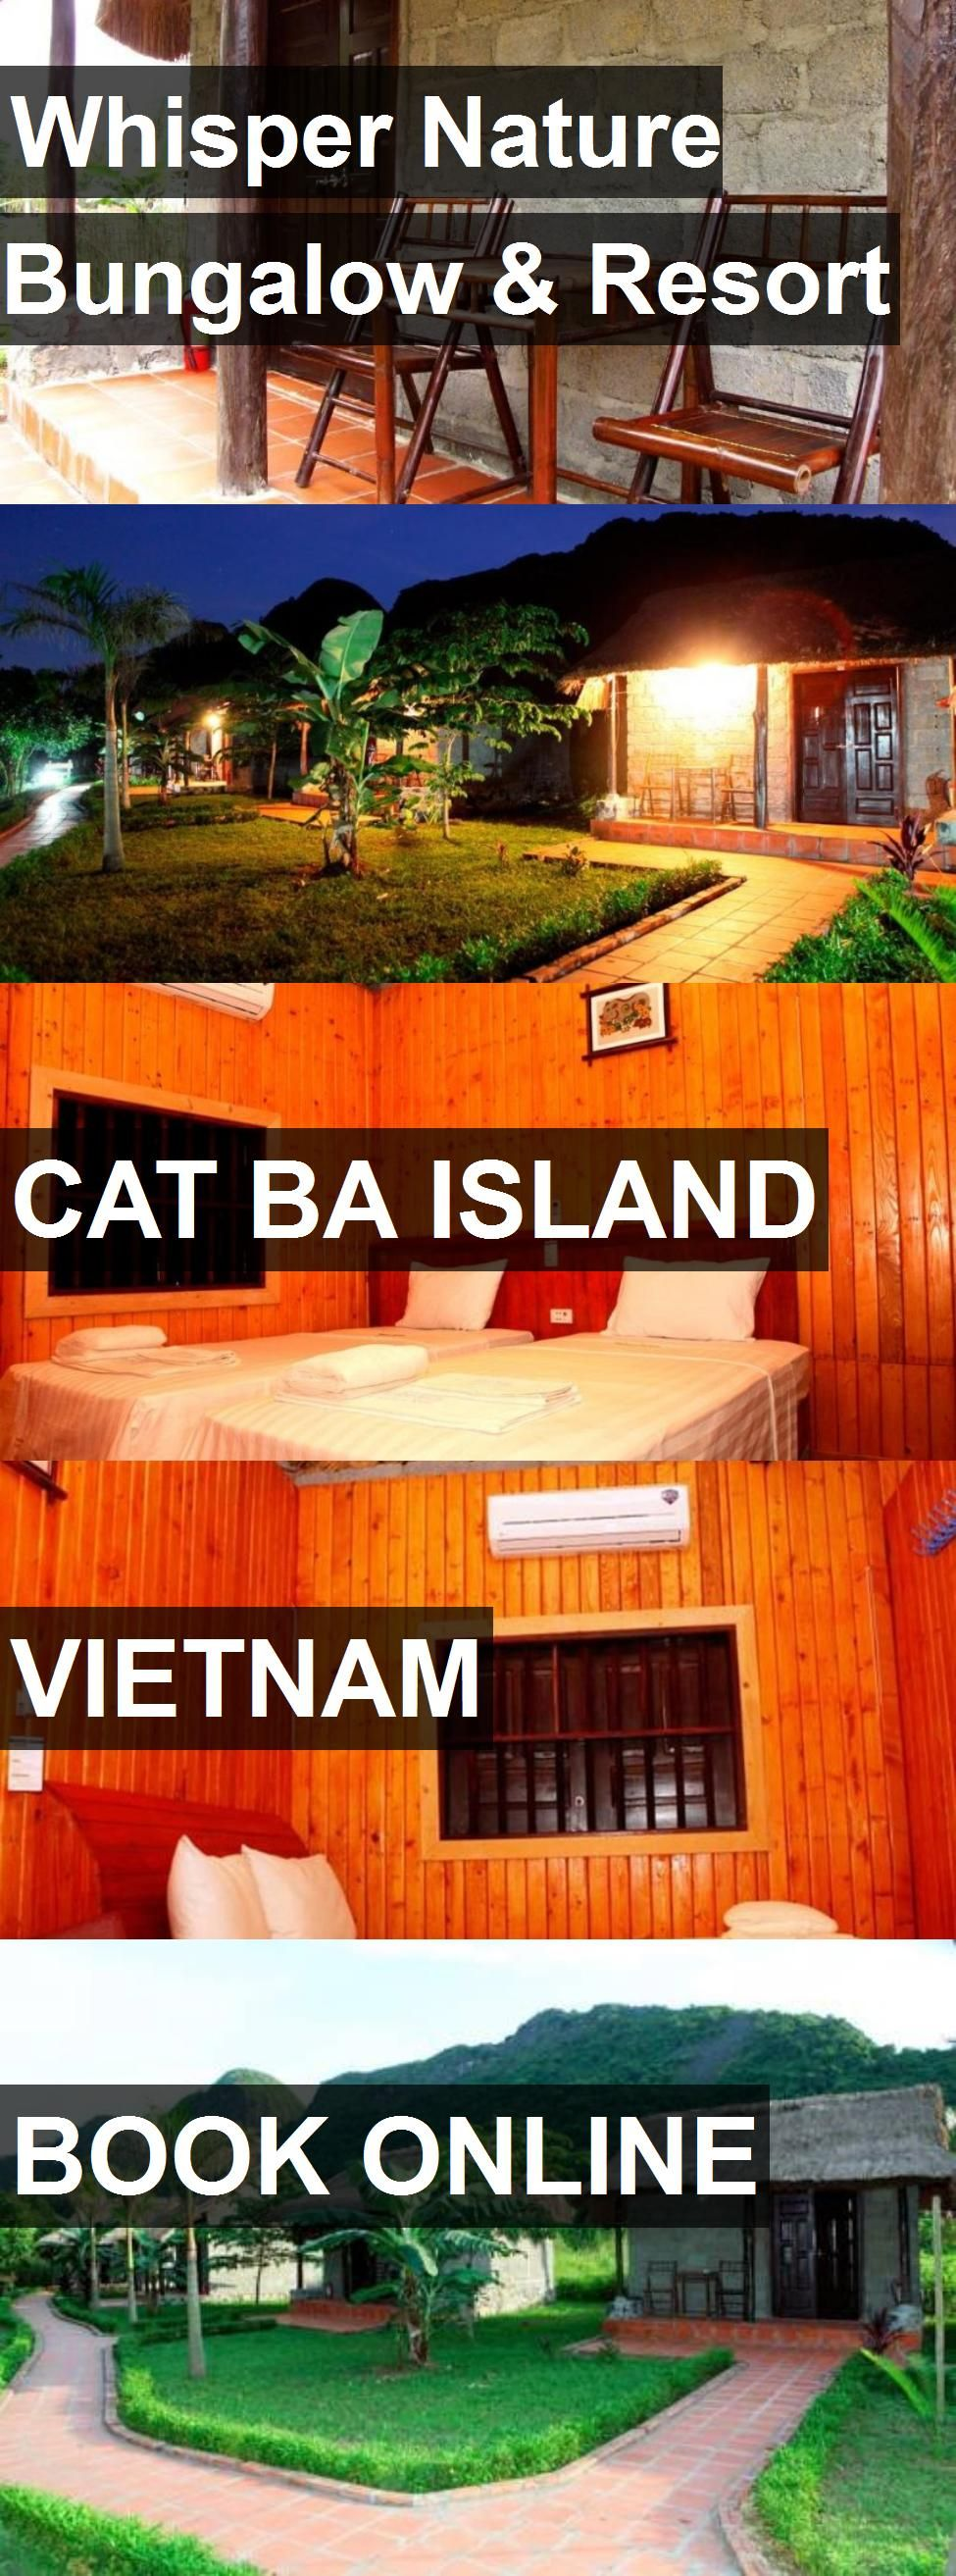 Hotel Whisper Nature Bungalow Bungalow resorts, Cat ba